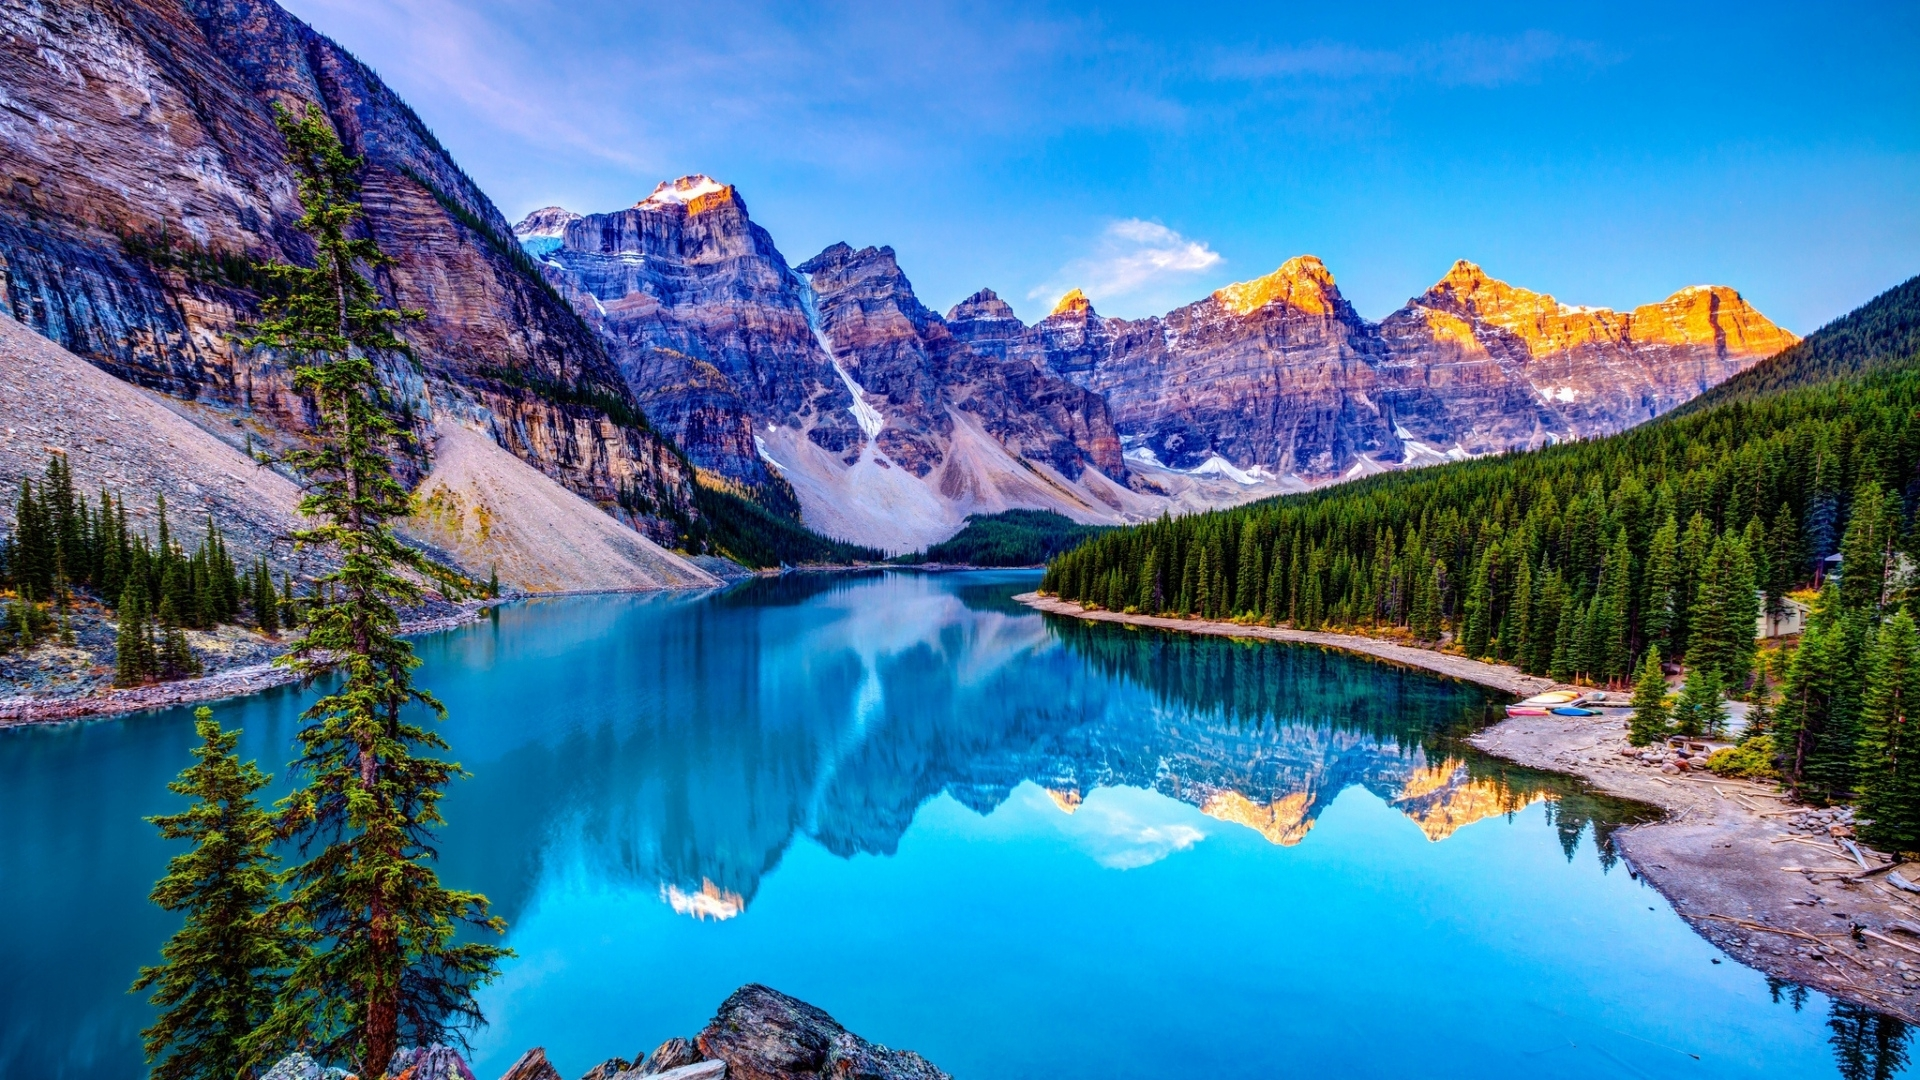 Title 1080p Nature Wallpapers Widescreen Of Wp Dimension 1920 X 1080 File Type JPG JPEG